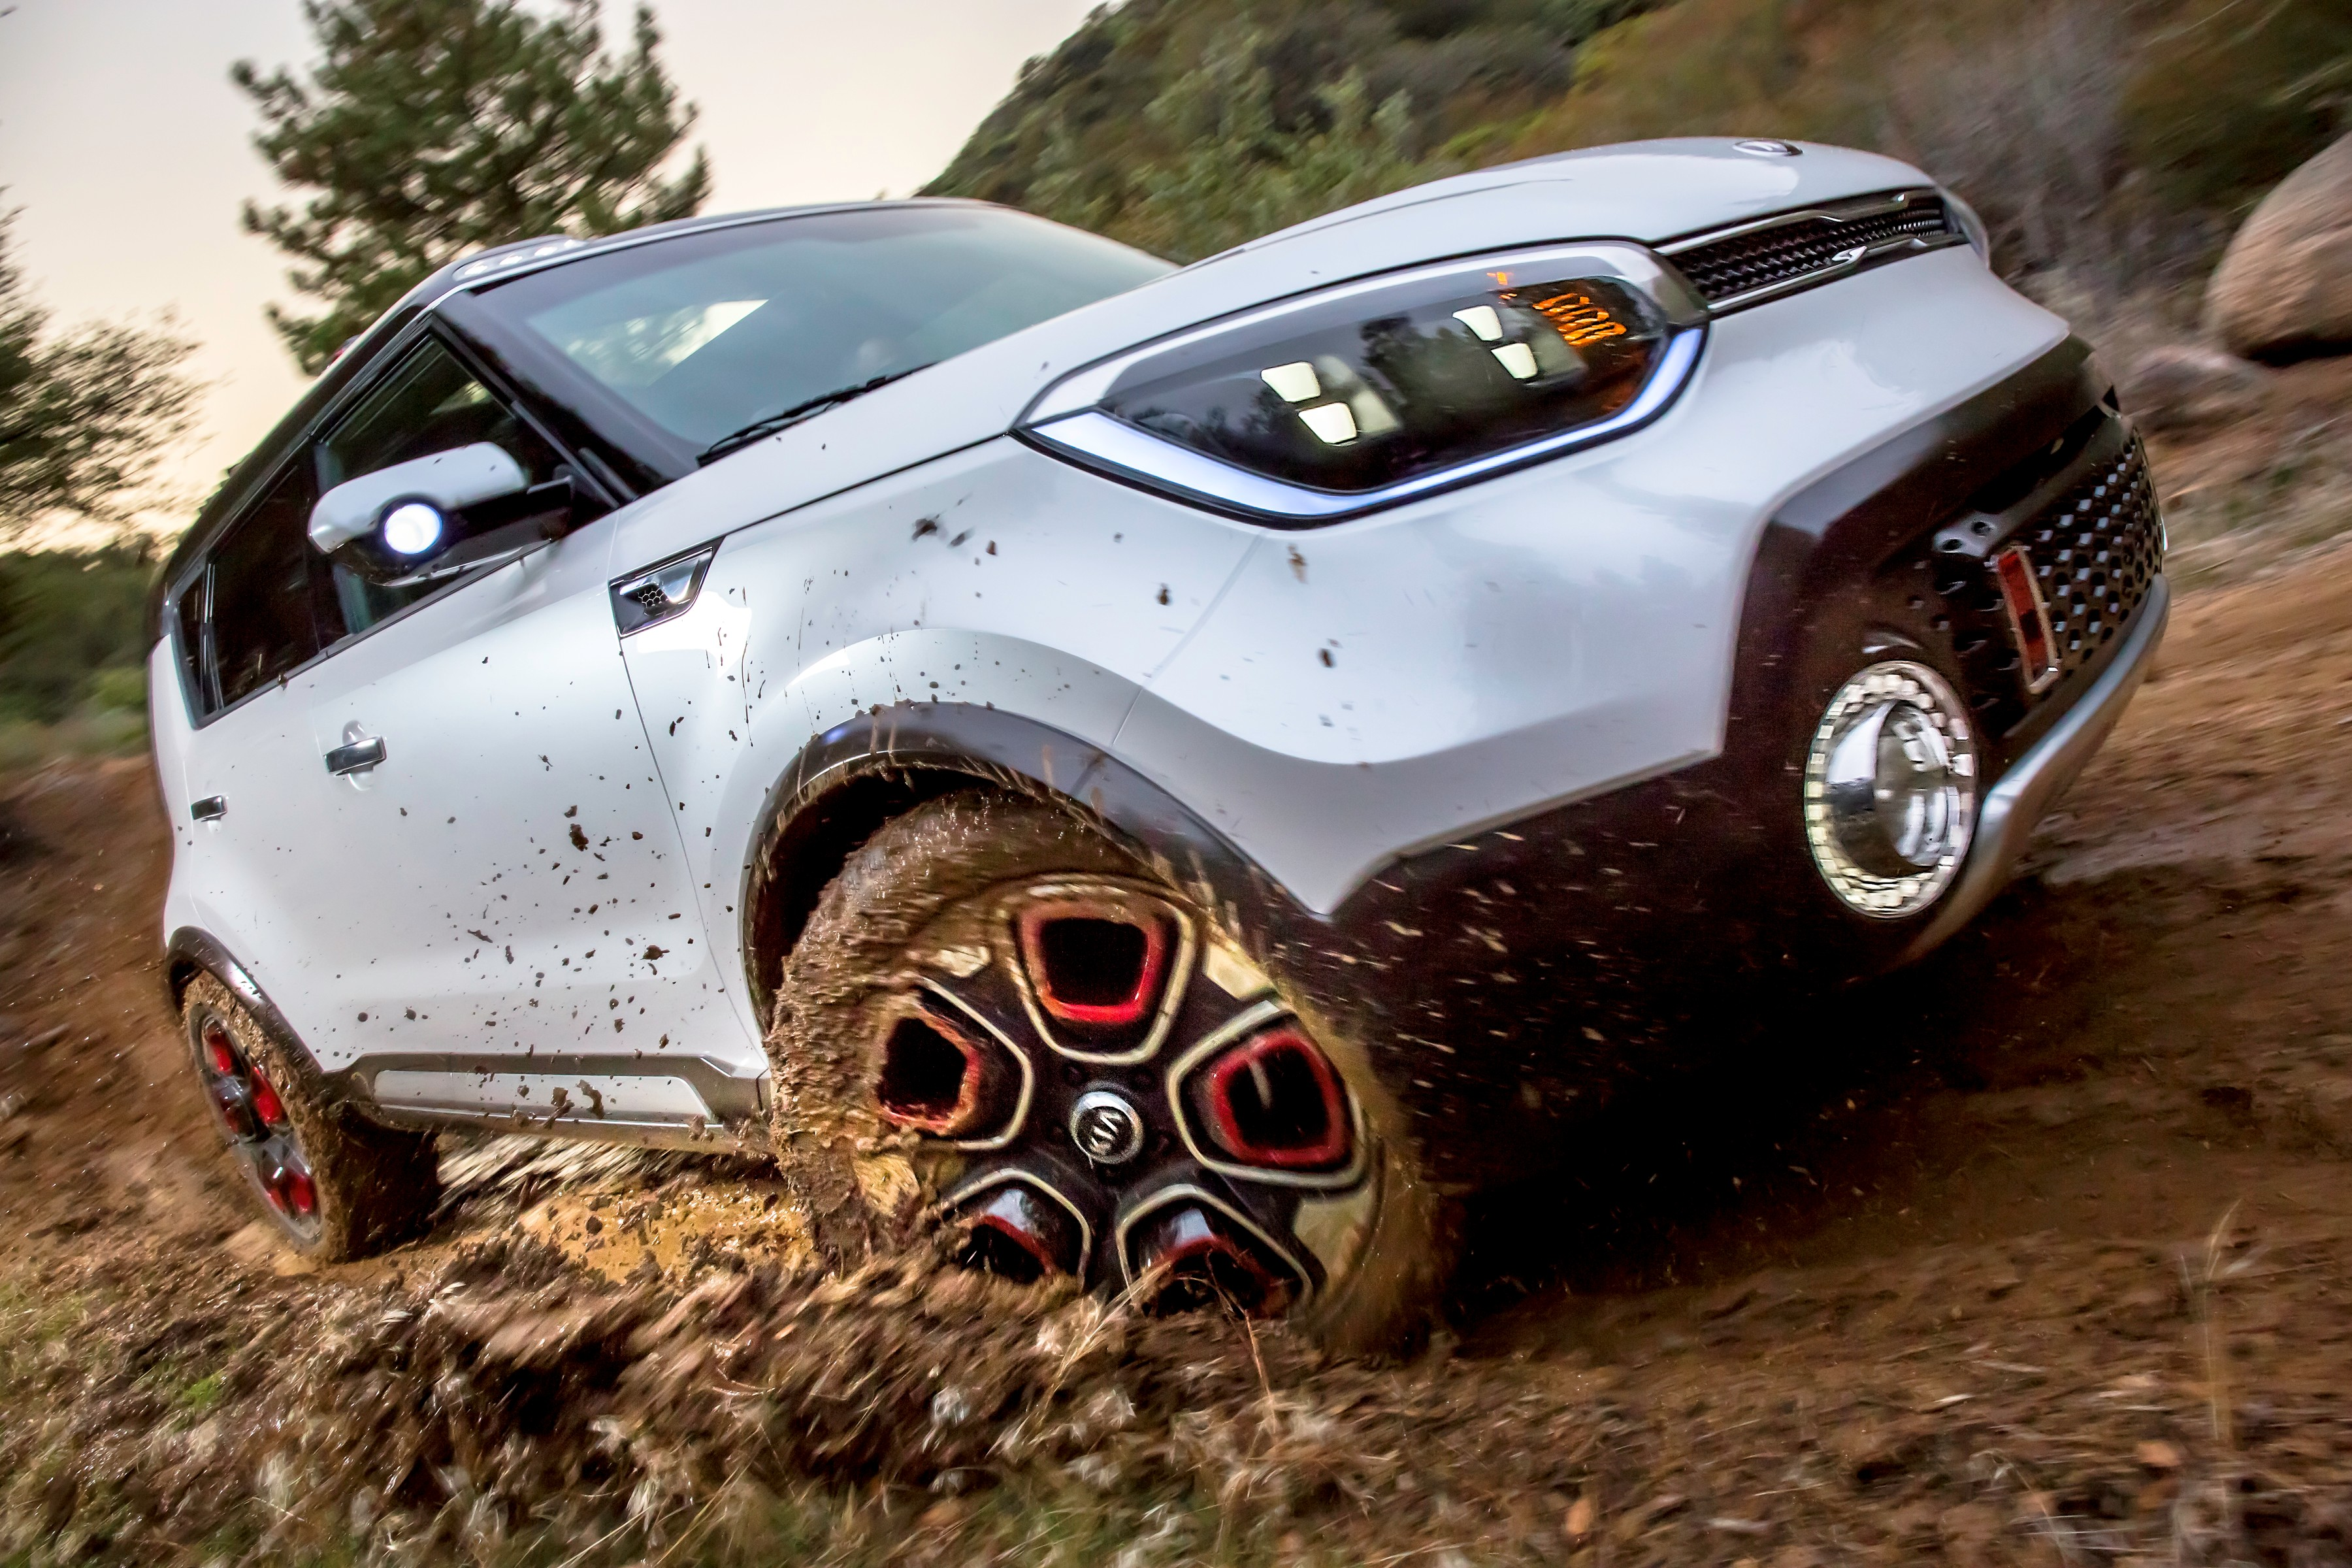 Trail Ster The Kia Soul Awd Electric Concept Revealed